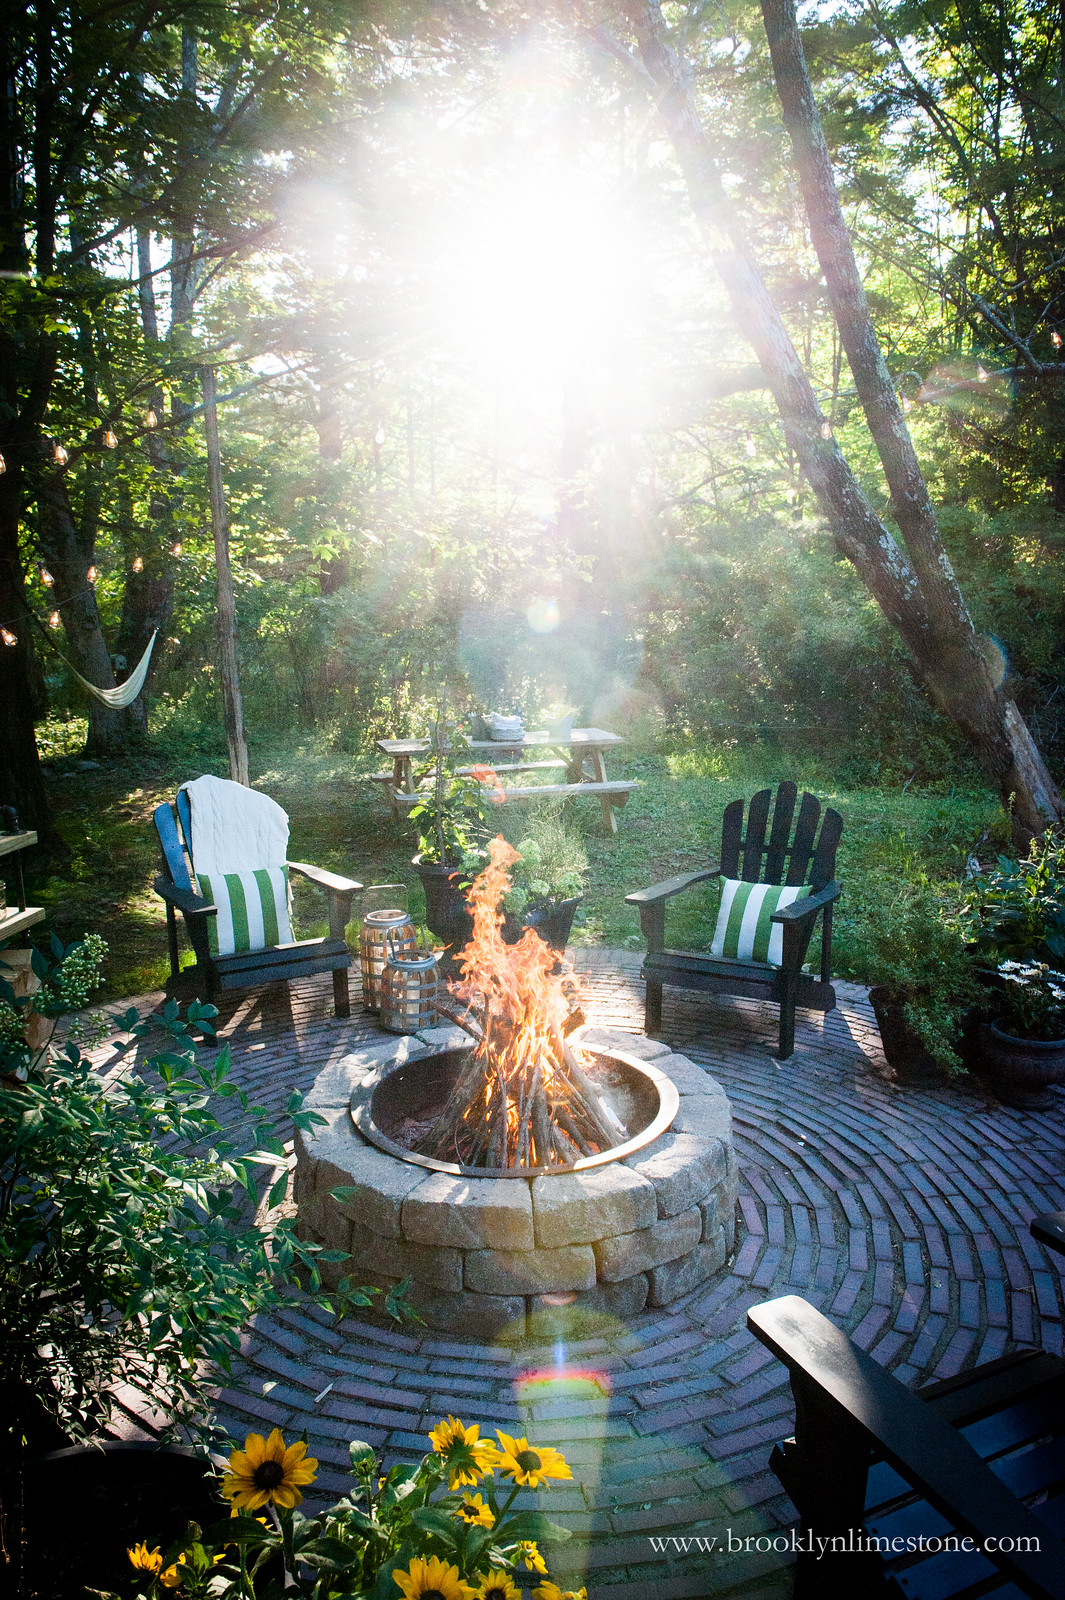 Firepit Patio  Country Cottage DIY Circular Outdoor Entertaining Space  Brooklyn Limestone